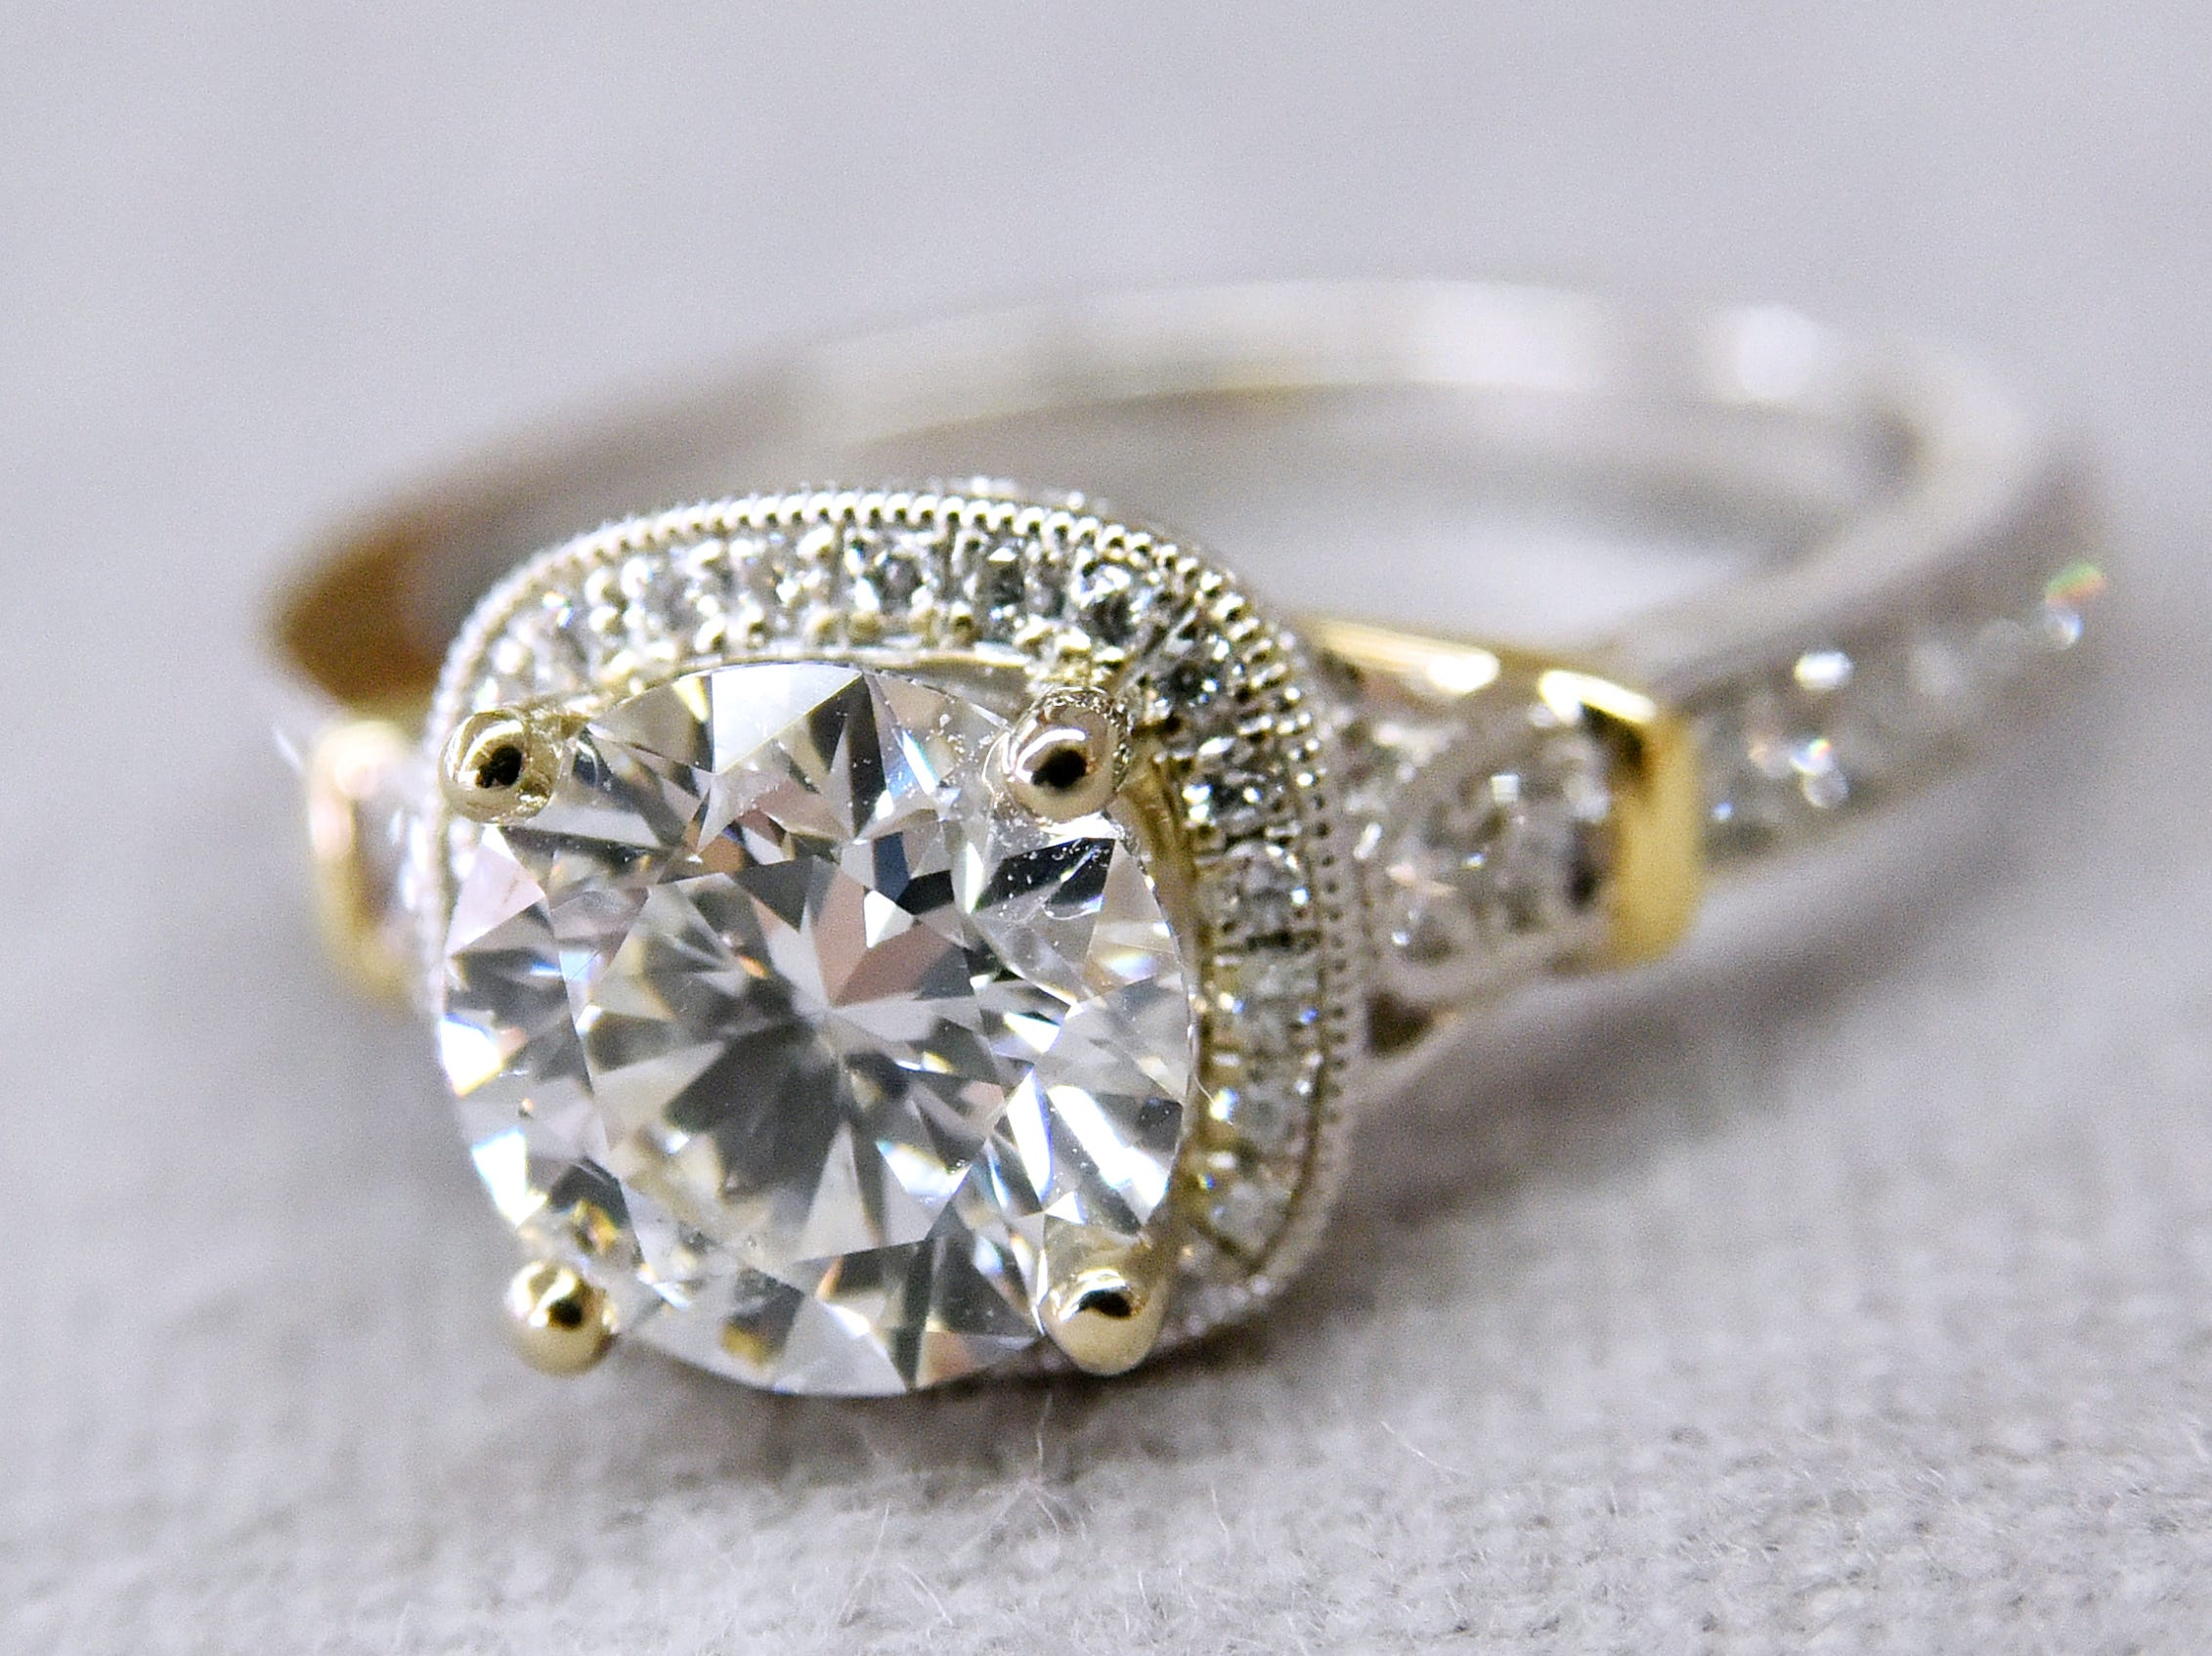 A diamond engagement ring from Pace Jewelers.